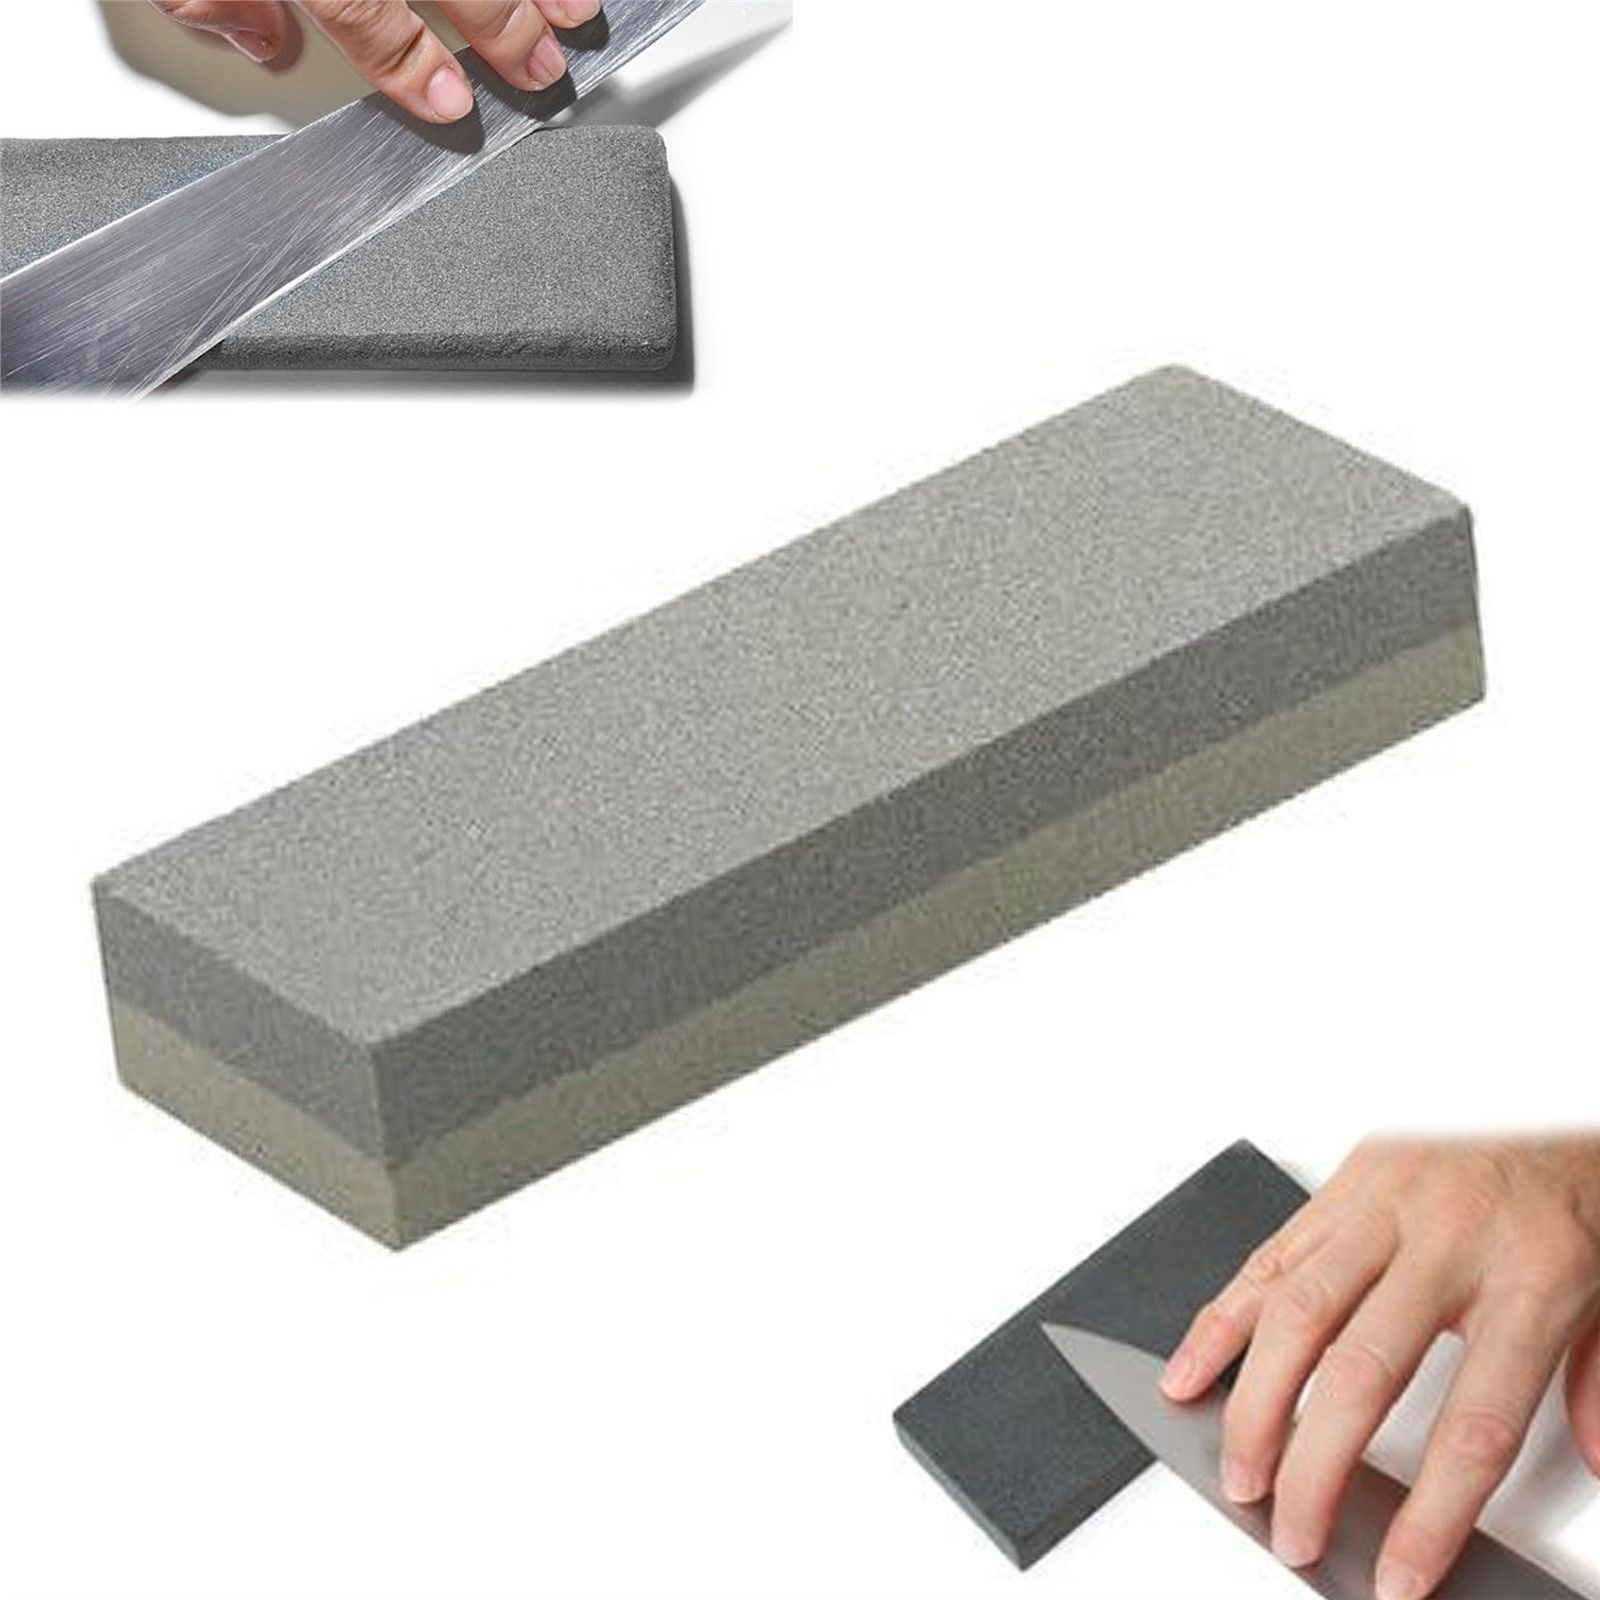 Double Sided Knife Sharping Stone